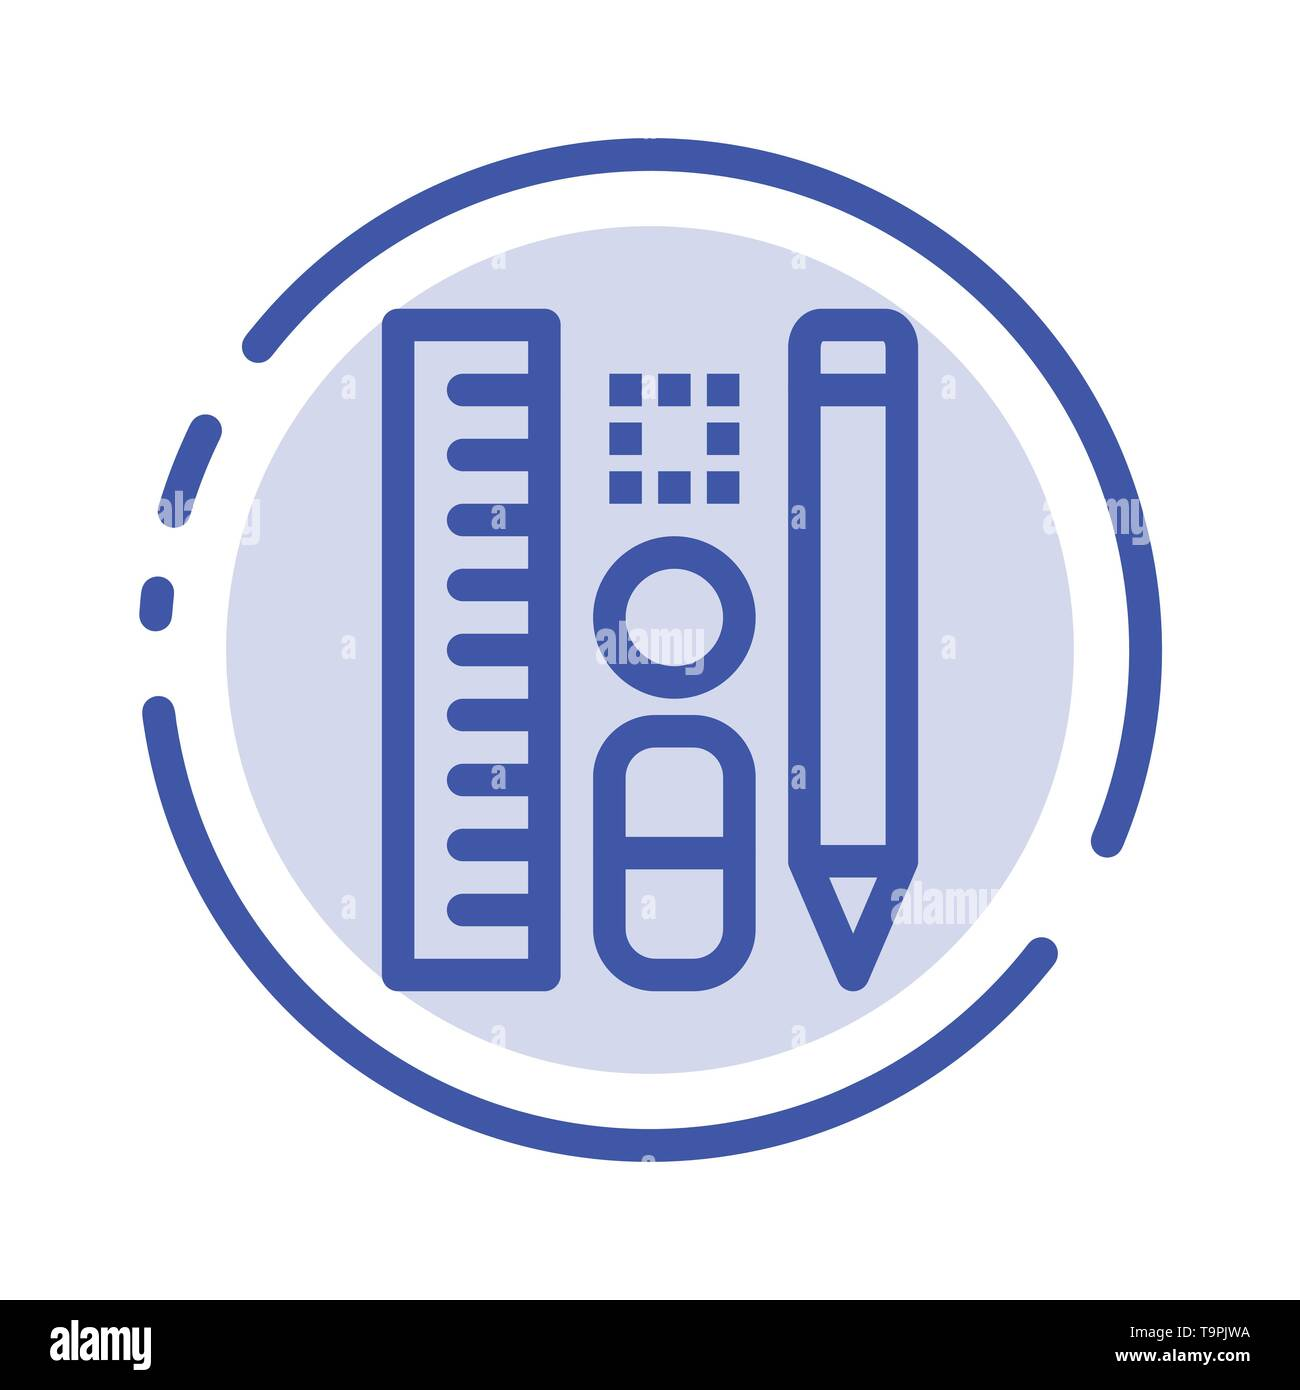 Pen, Pencil, Scale, Education Blue Dotted Line Line Icon - Stock Image